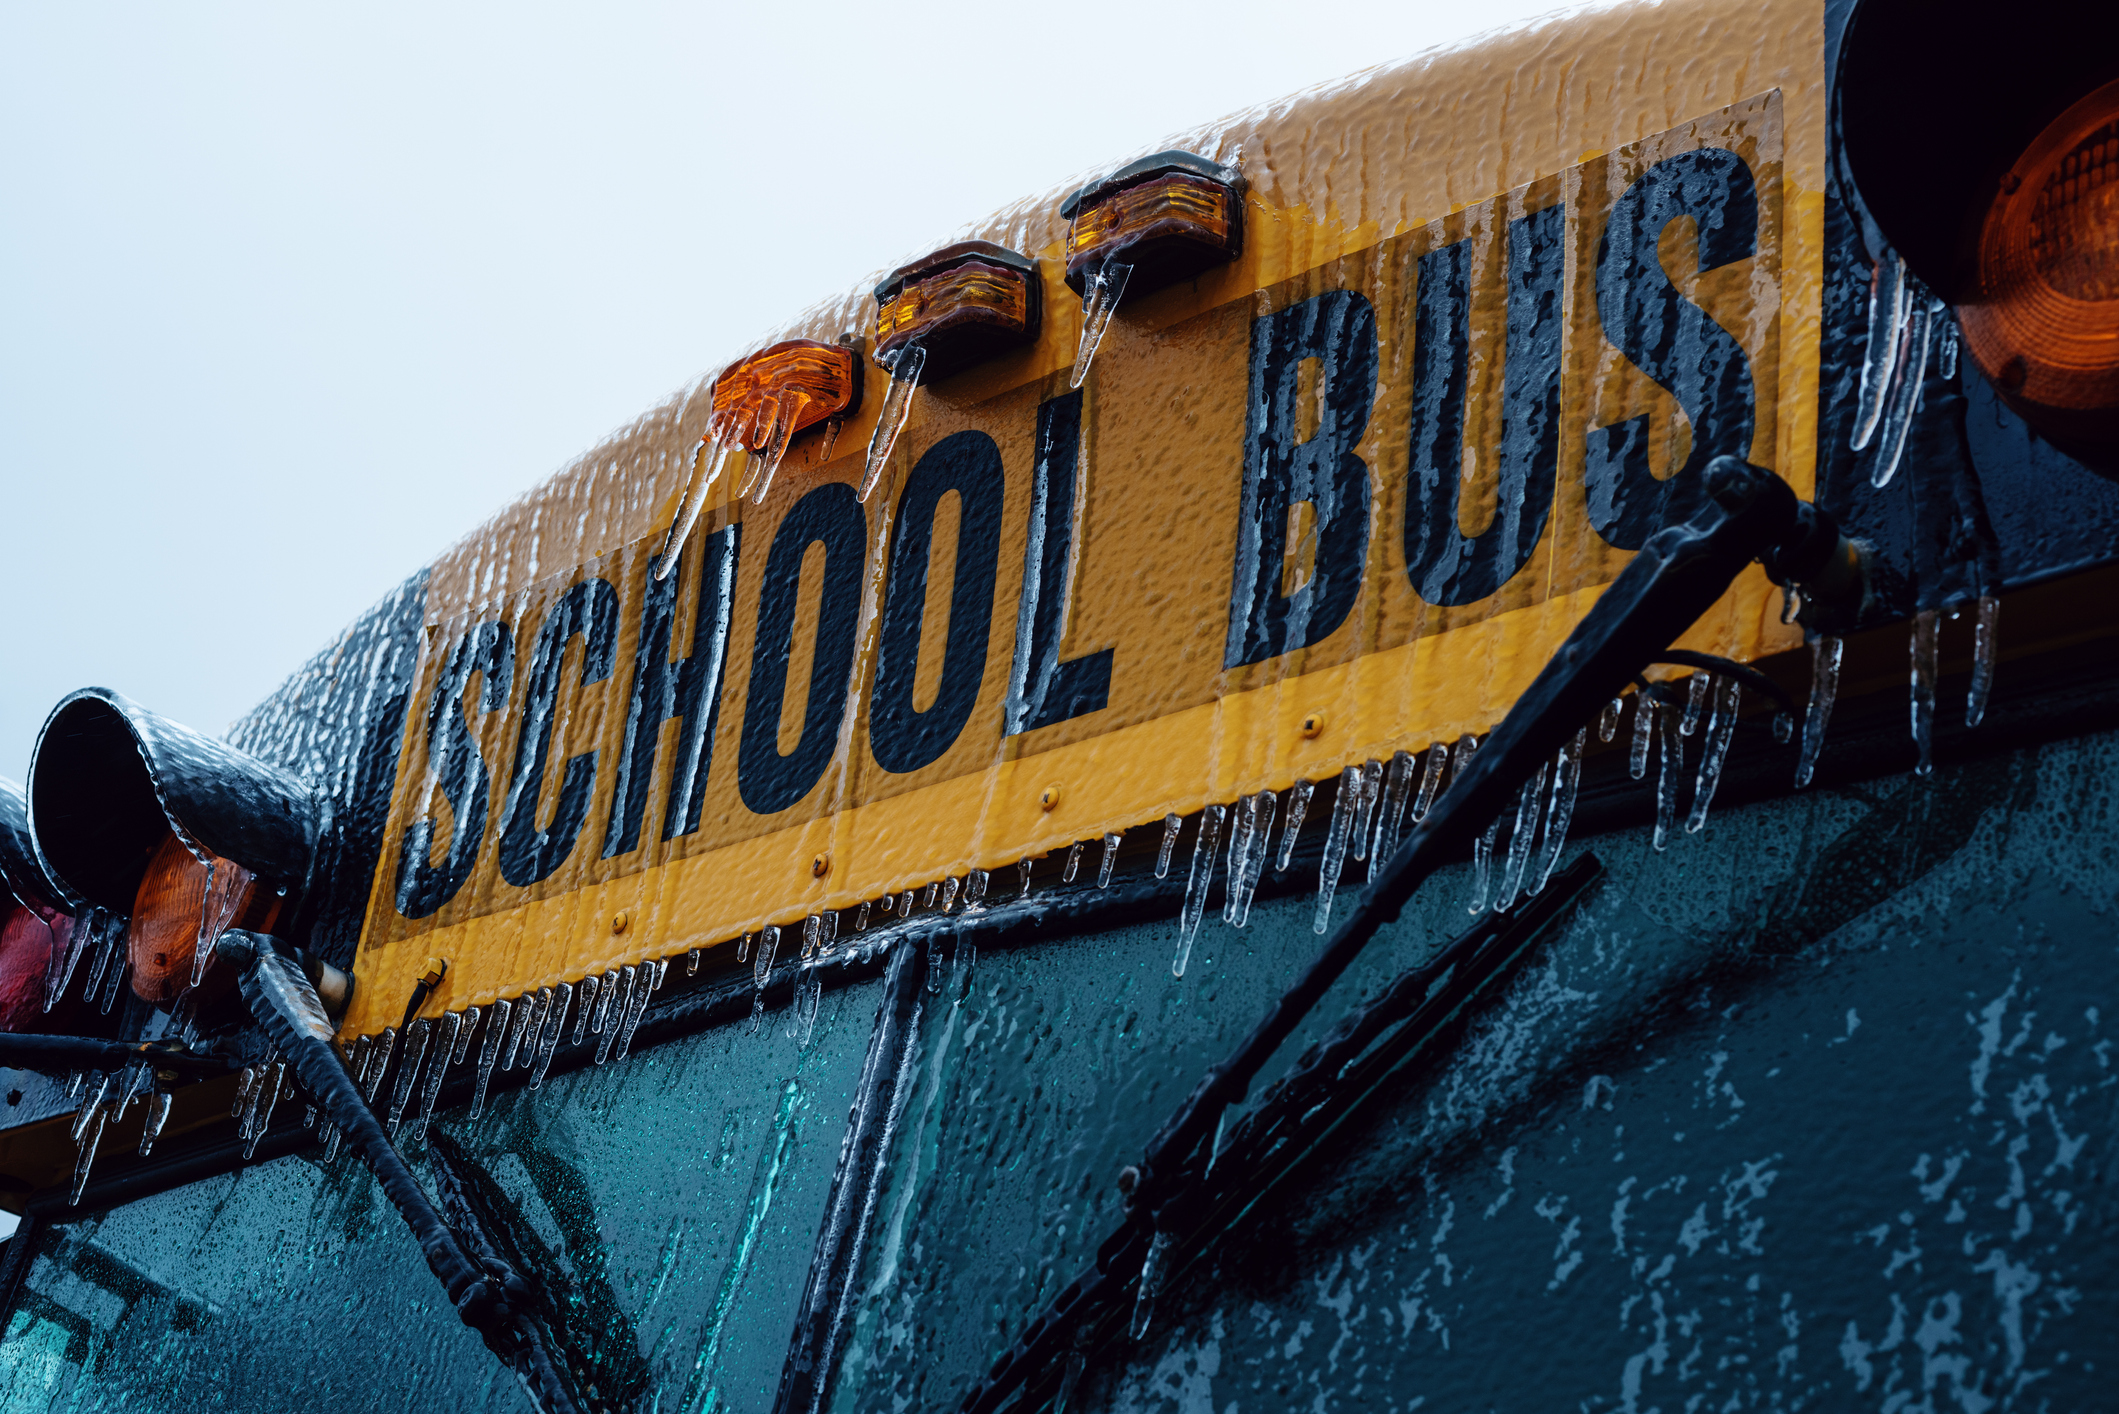 A school bus in covered in a thick layer of ice.